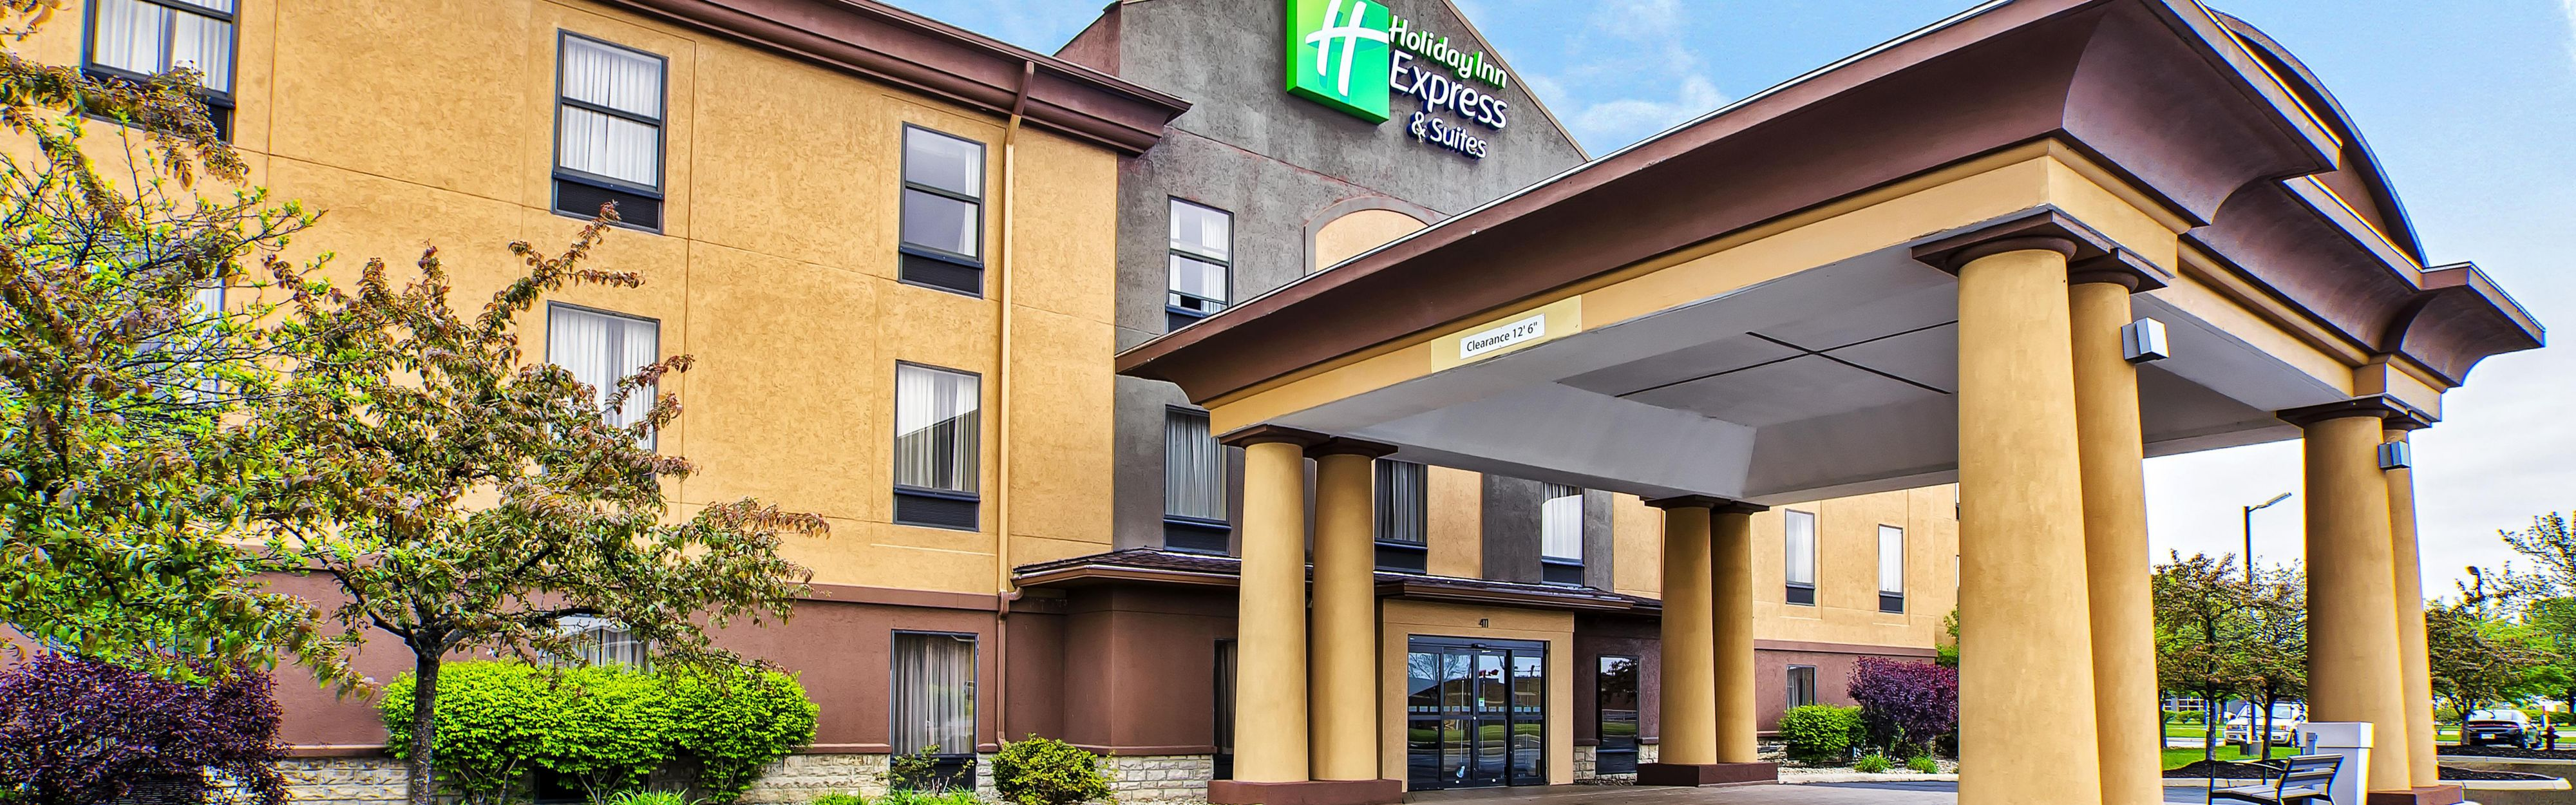 Hotels Near Marysville Ohio